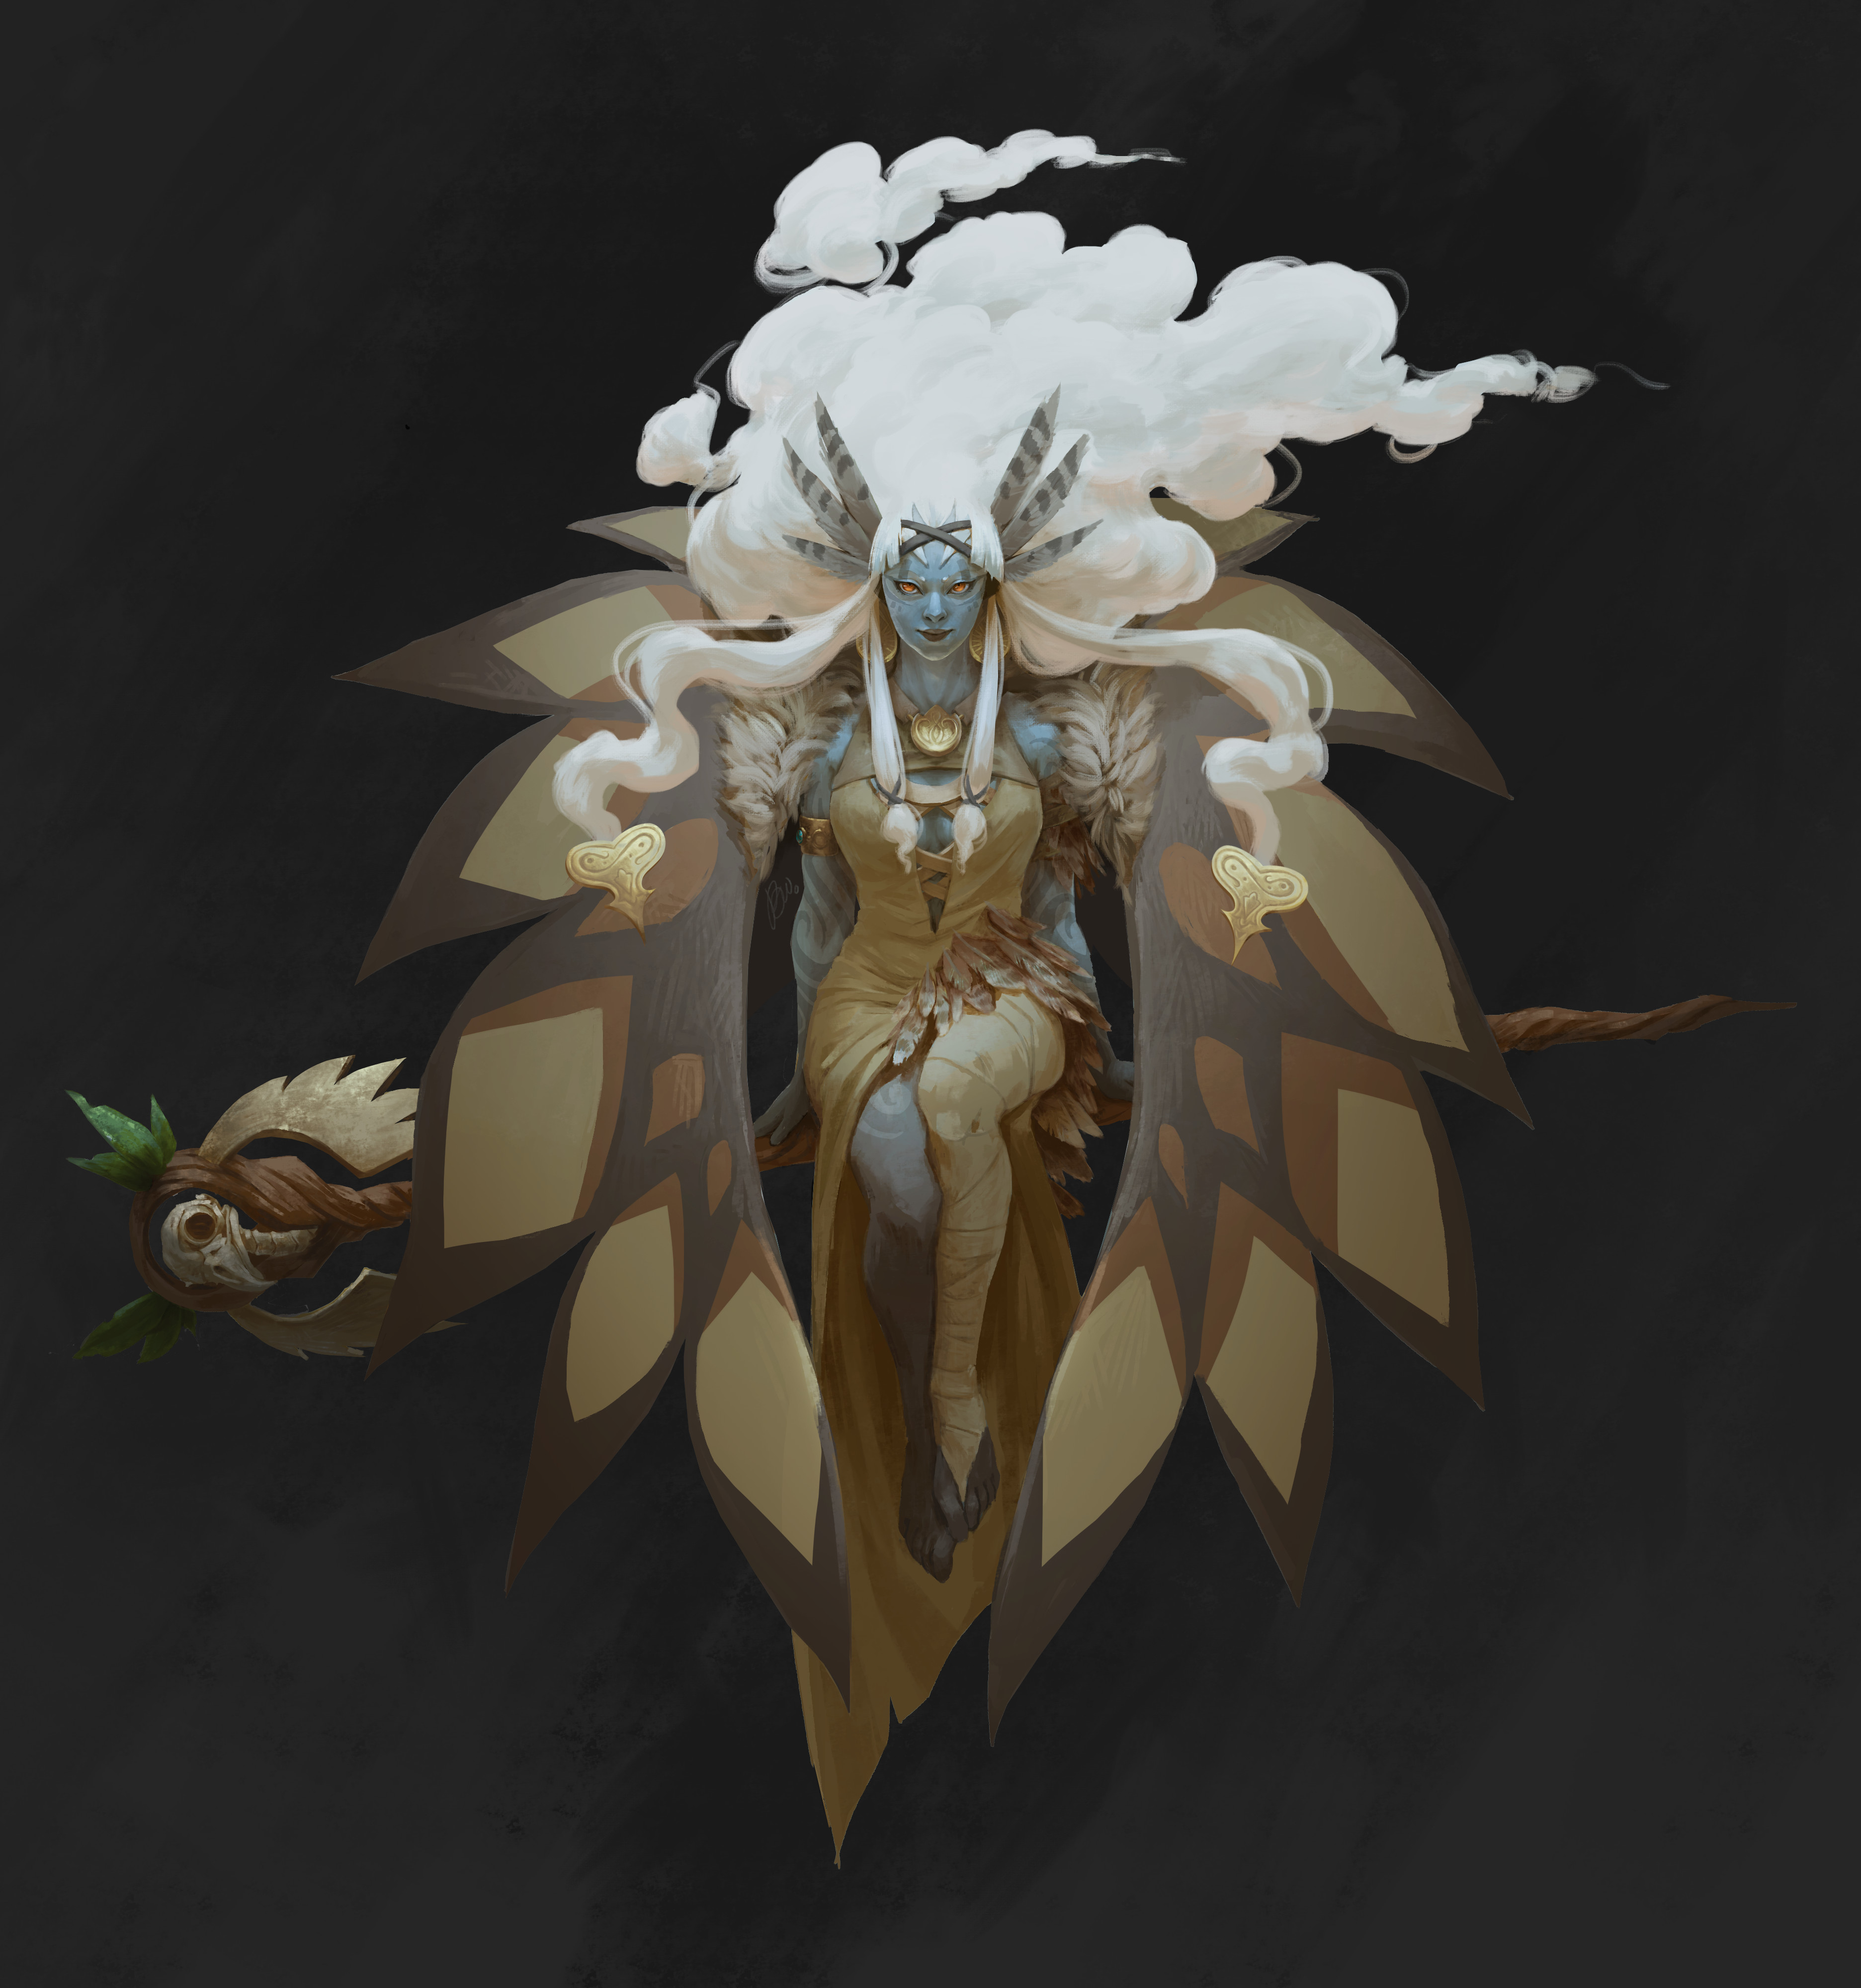 with her cloak I took a bit of a graphical approach. Thought it was fun